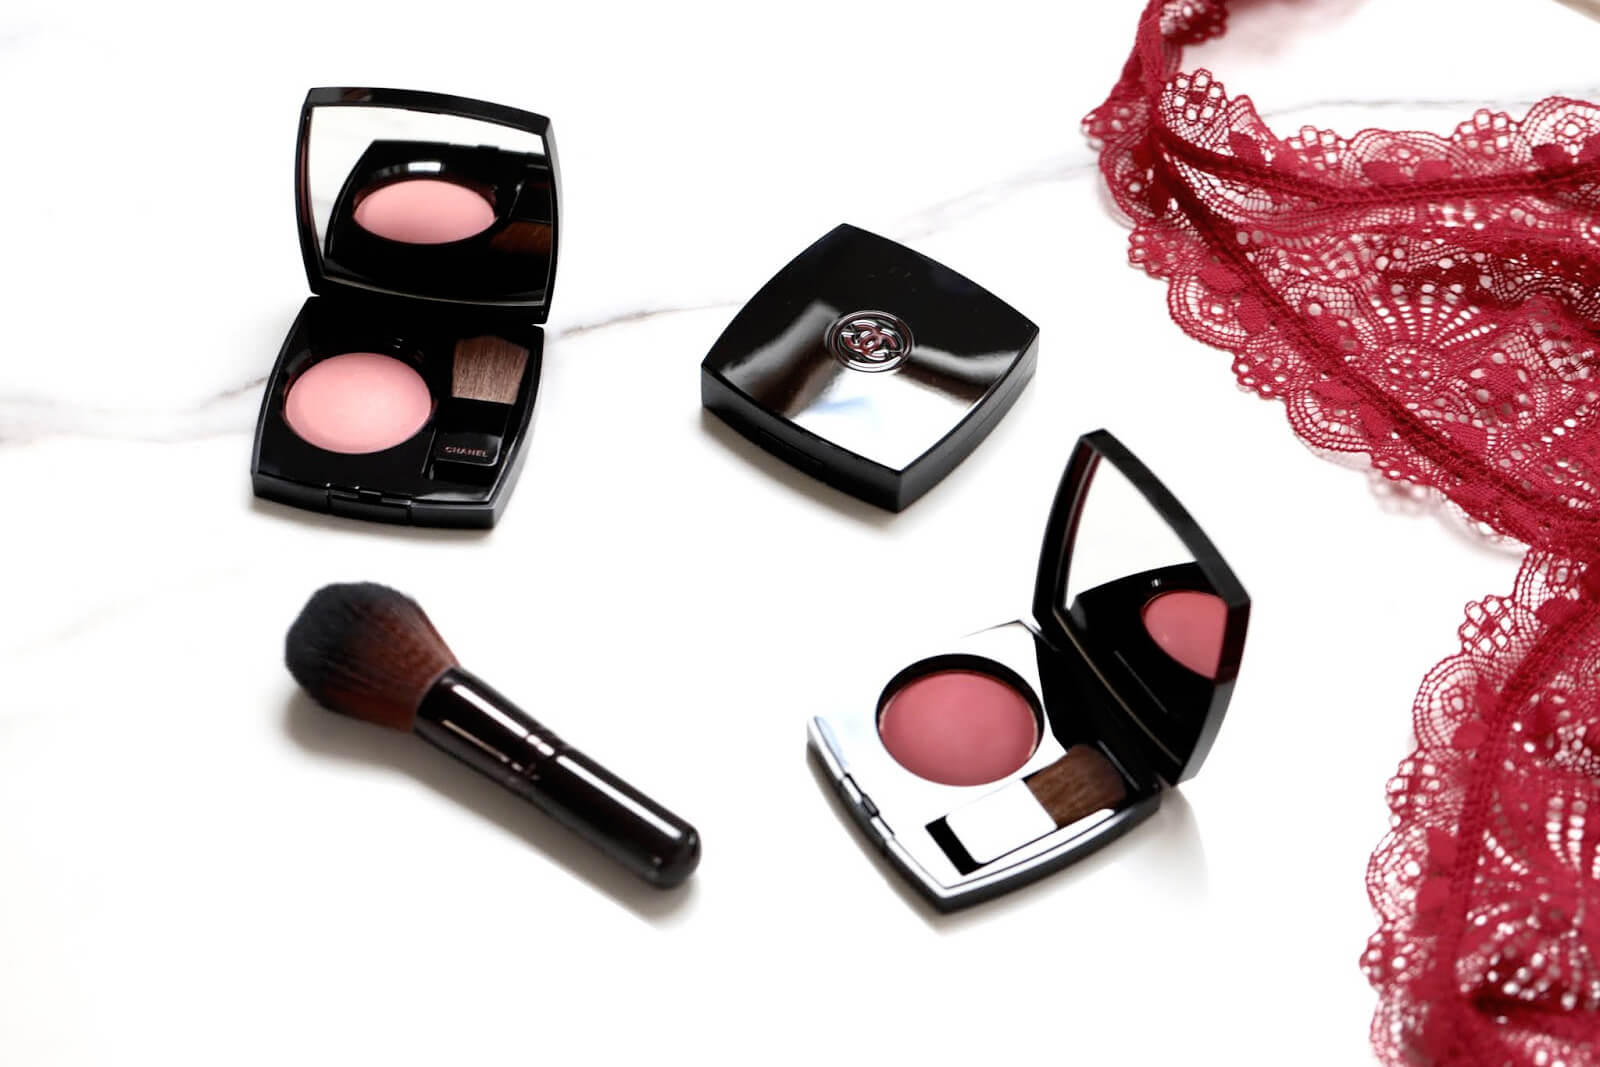 Chanel Joues Contraste Blush 71 Malice 320 Rouge Profond 72 Rose Initial